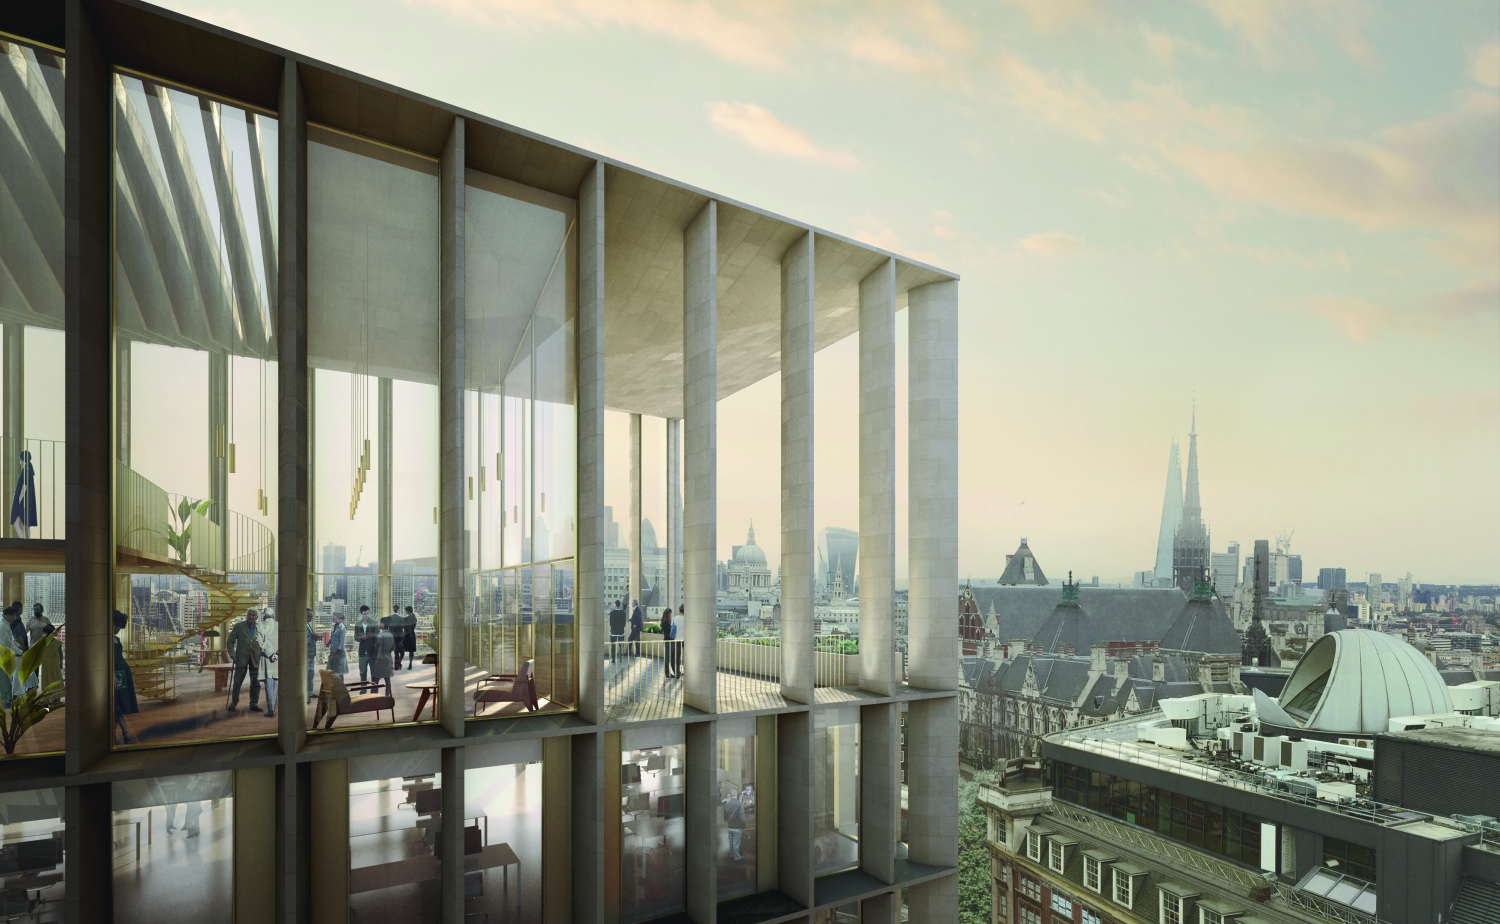 LSE Marshall Building Competition - Paul Marshall Institute